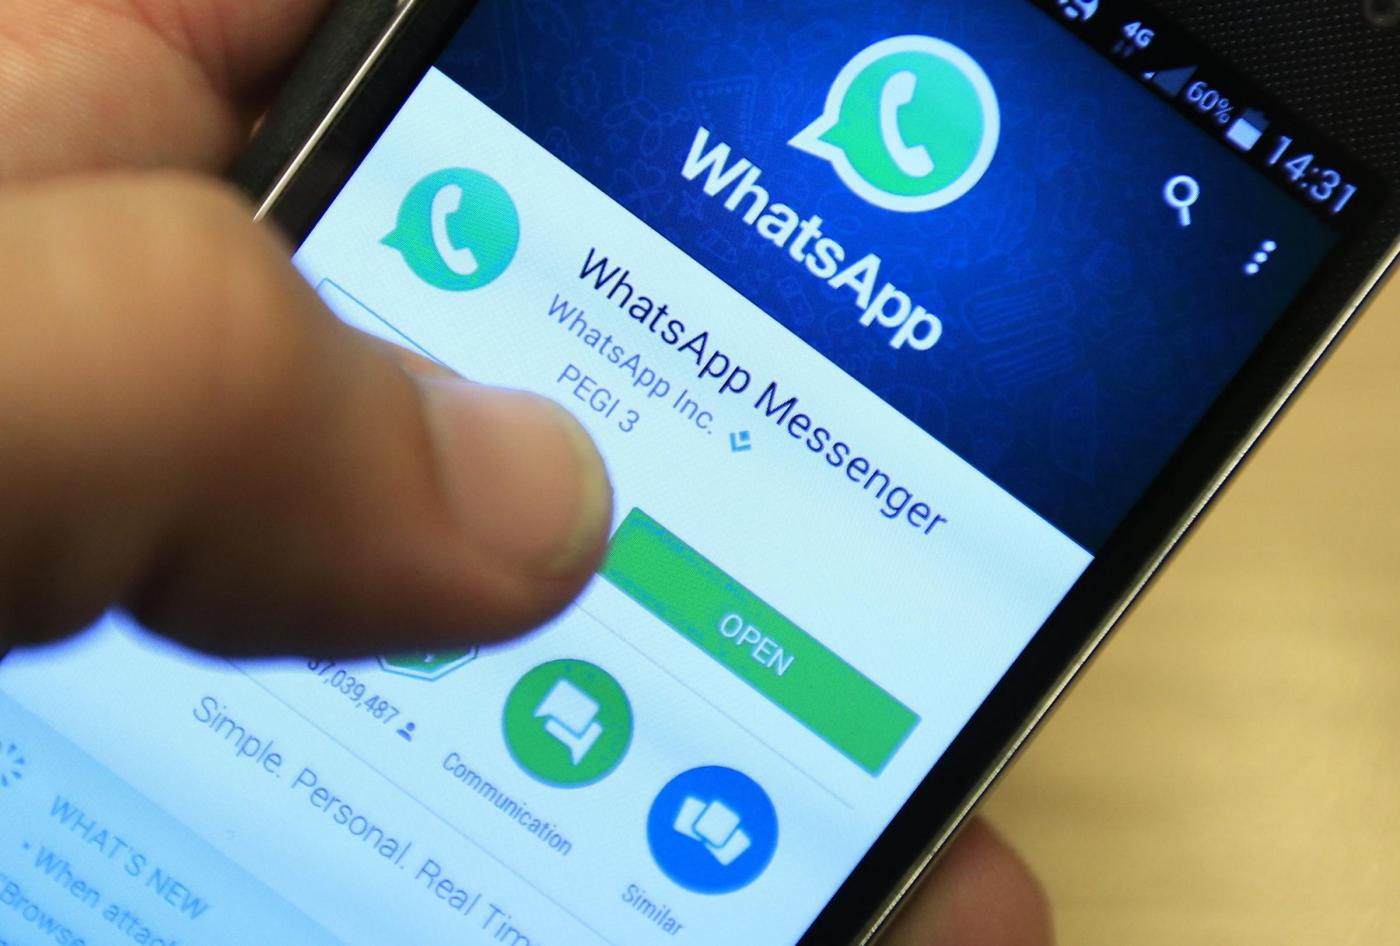 Grassetto su WhatsApp: come farlo